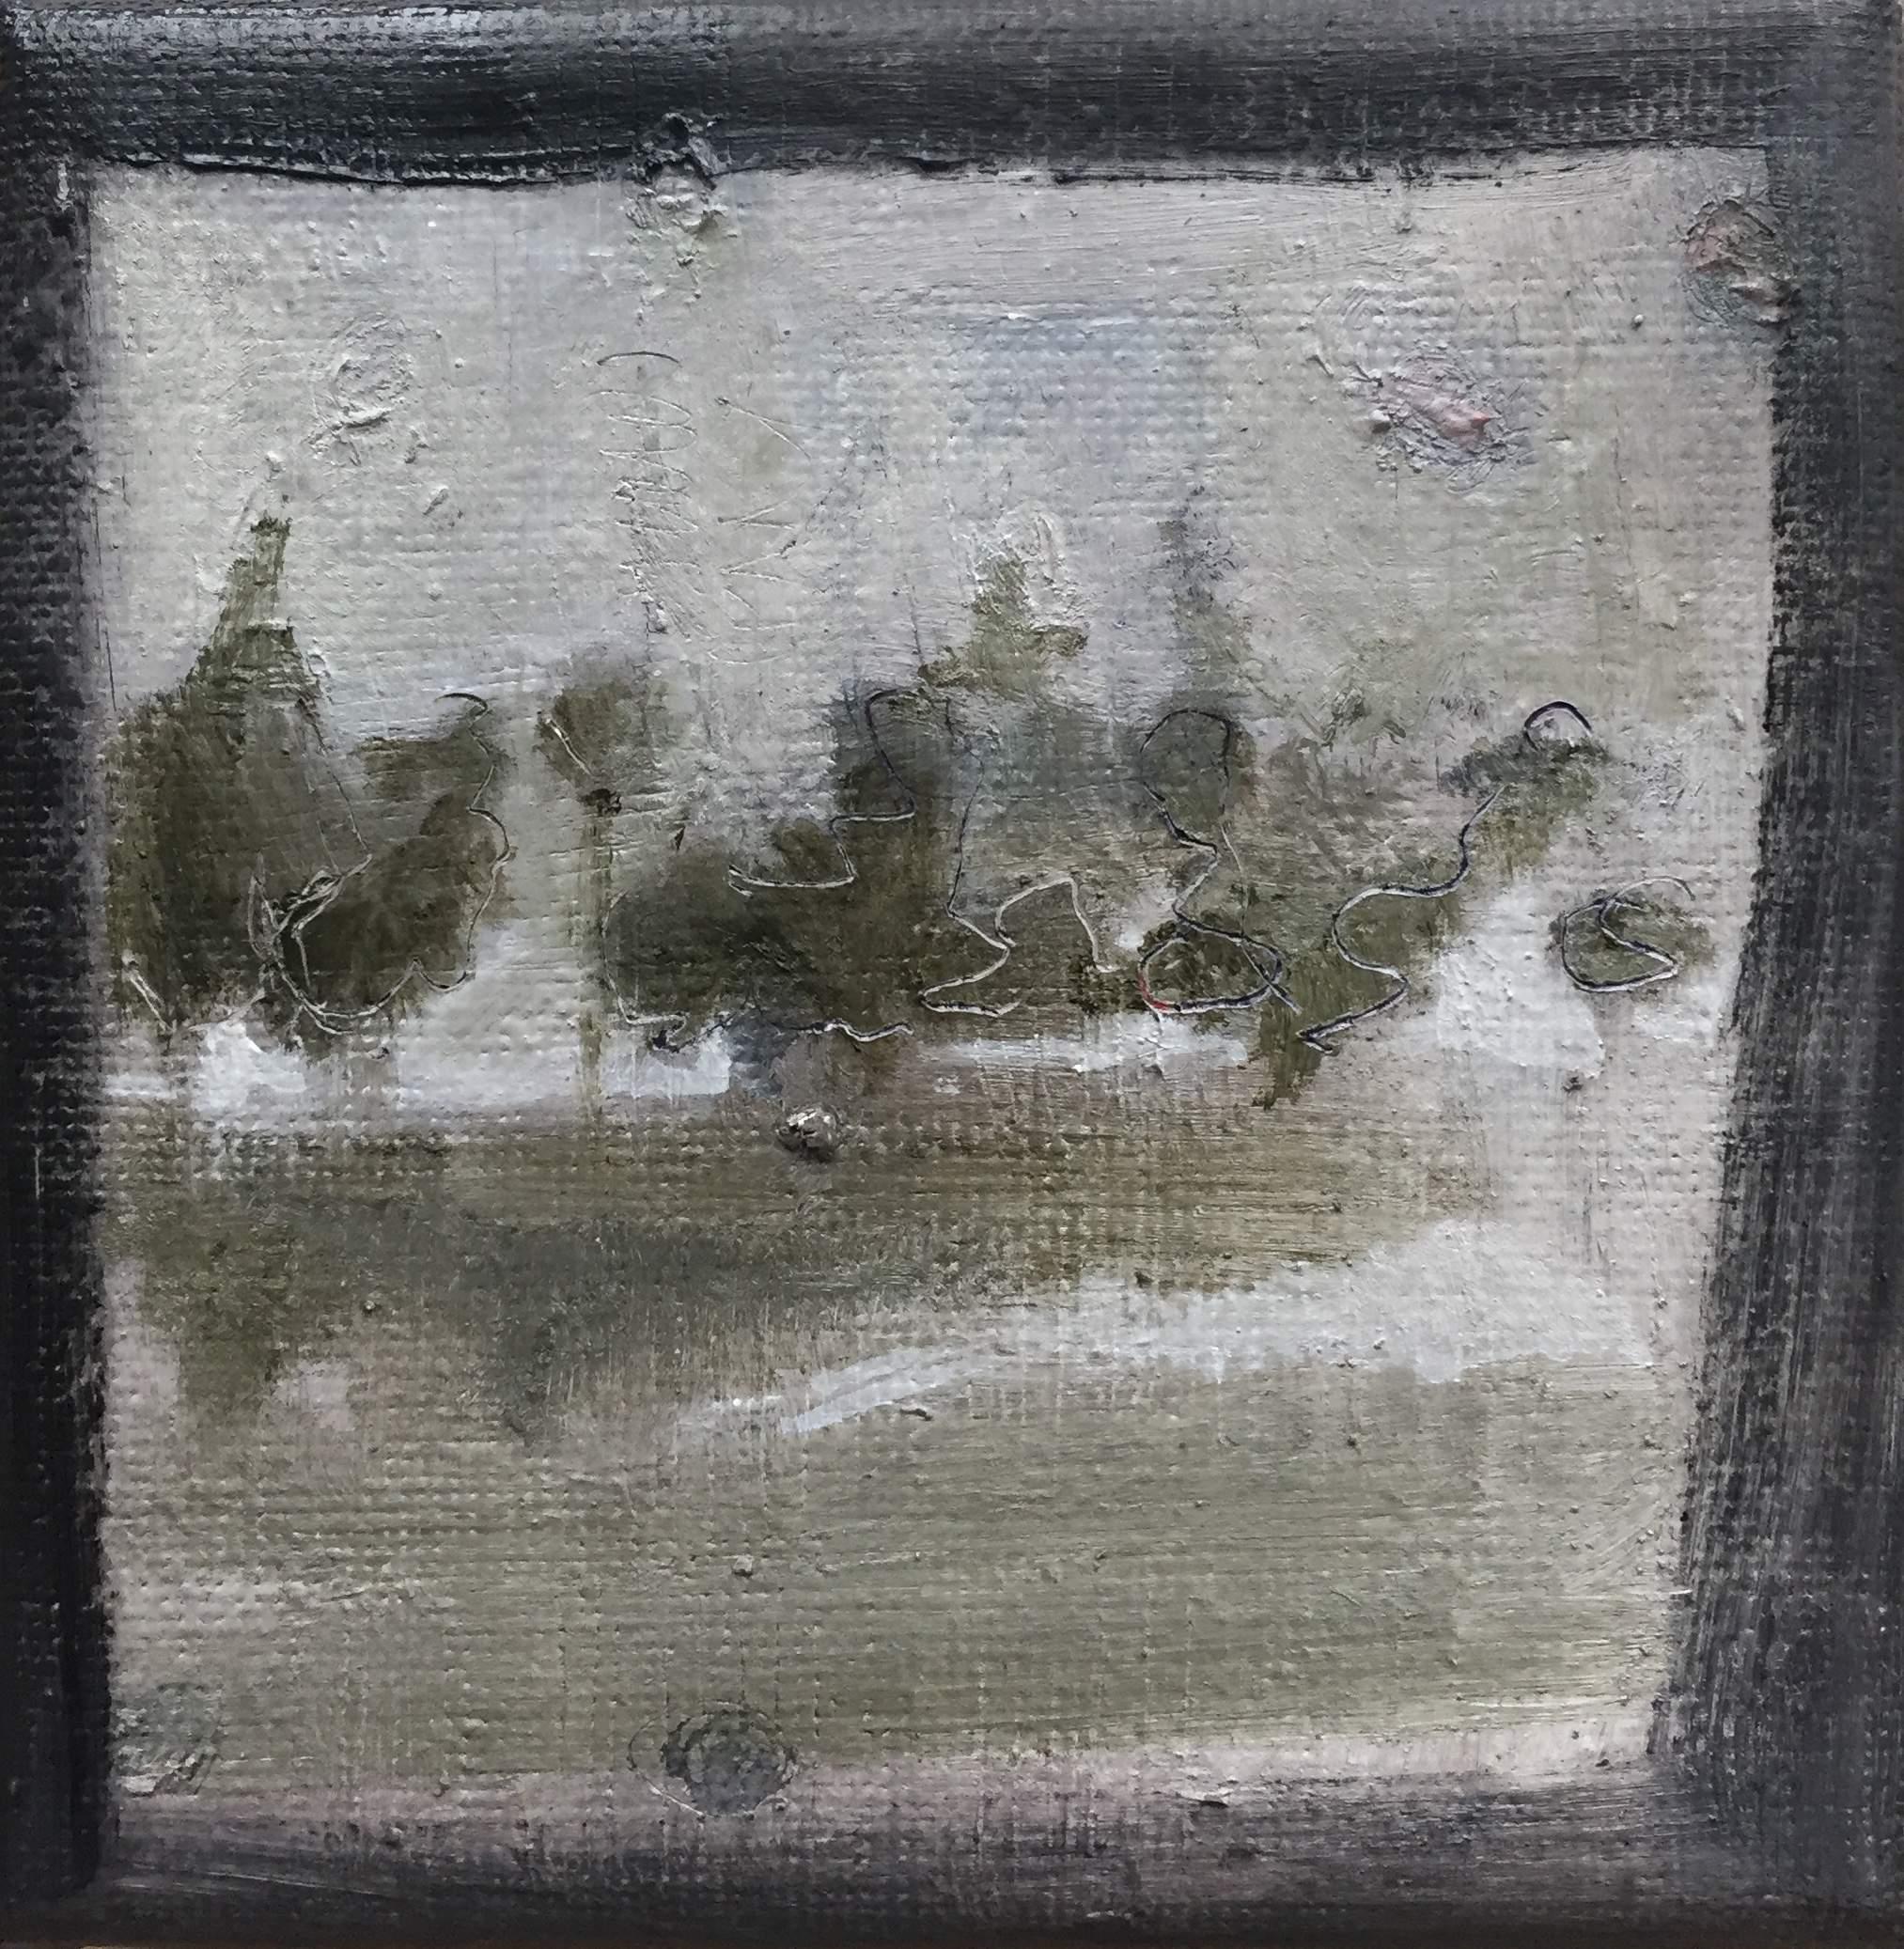 10 x 10 cm, oil paint on canvas